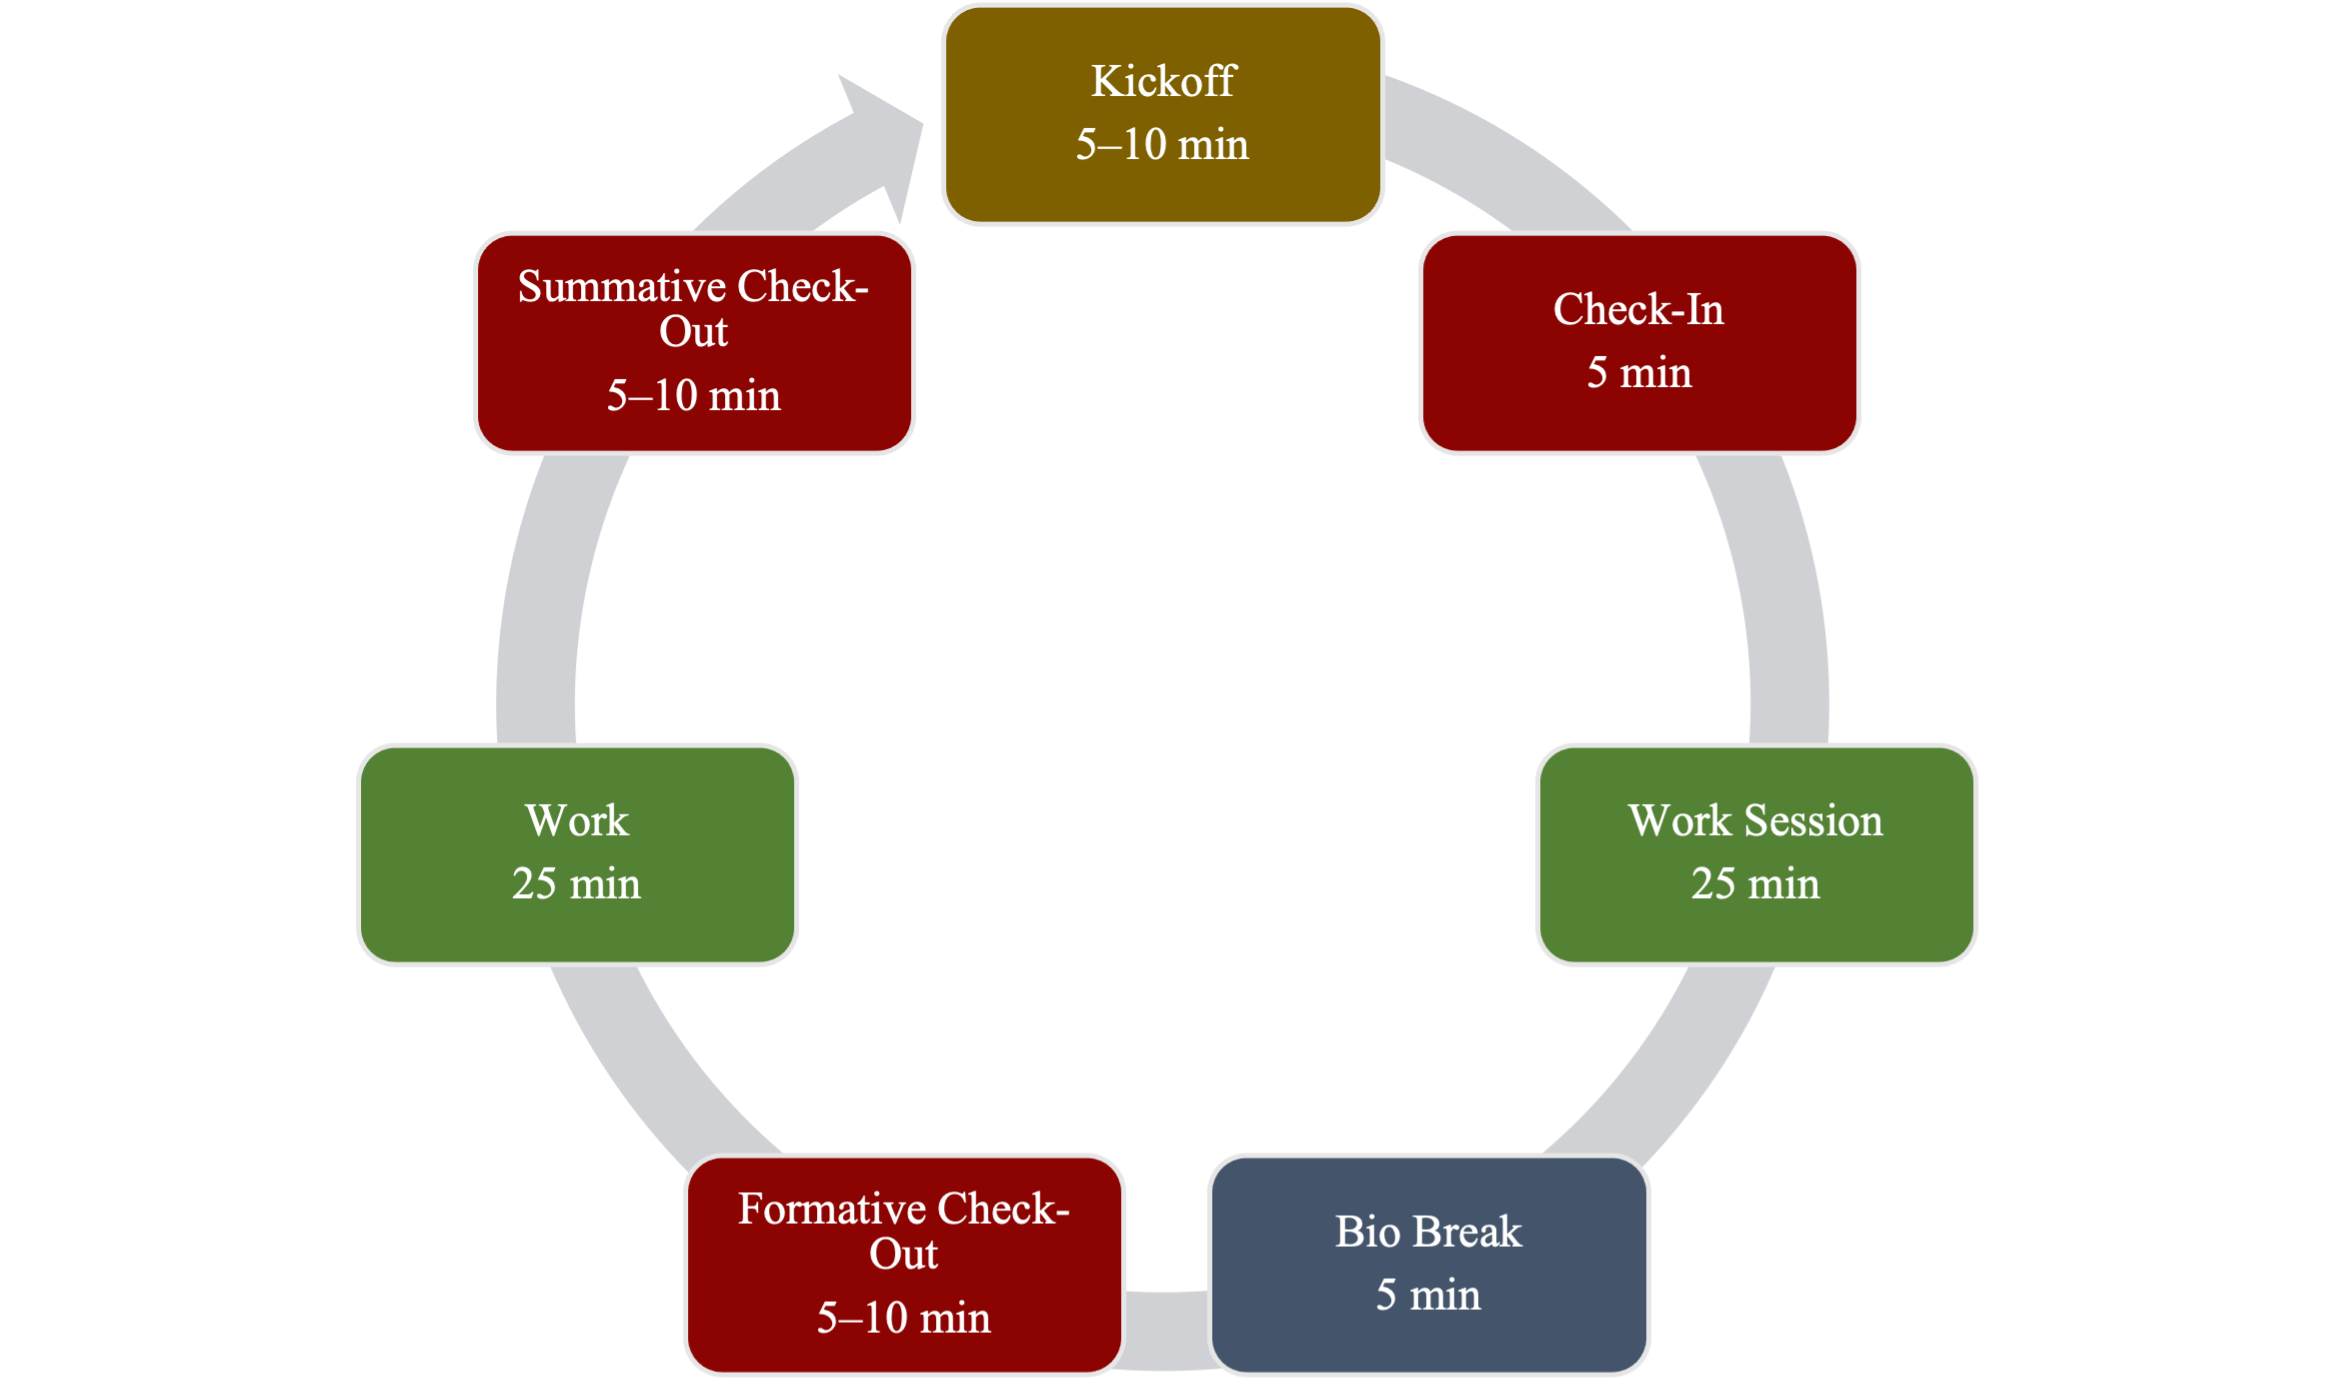 A circular flow chart that an arrow shows moving clock-wise. From the beginning to end of the flow chart the boxes are labeled: Kickoff (5 to 10 minutes), Check-in (5 minutes), Work Session (25 minutes), Bio Break (5 minutes), Formative Check-Out (5 to 10 minutes), Work (25 minutes), and Summative Check-Out (5 to 10 minutes).